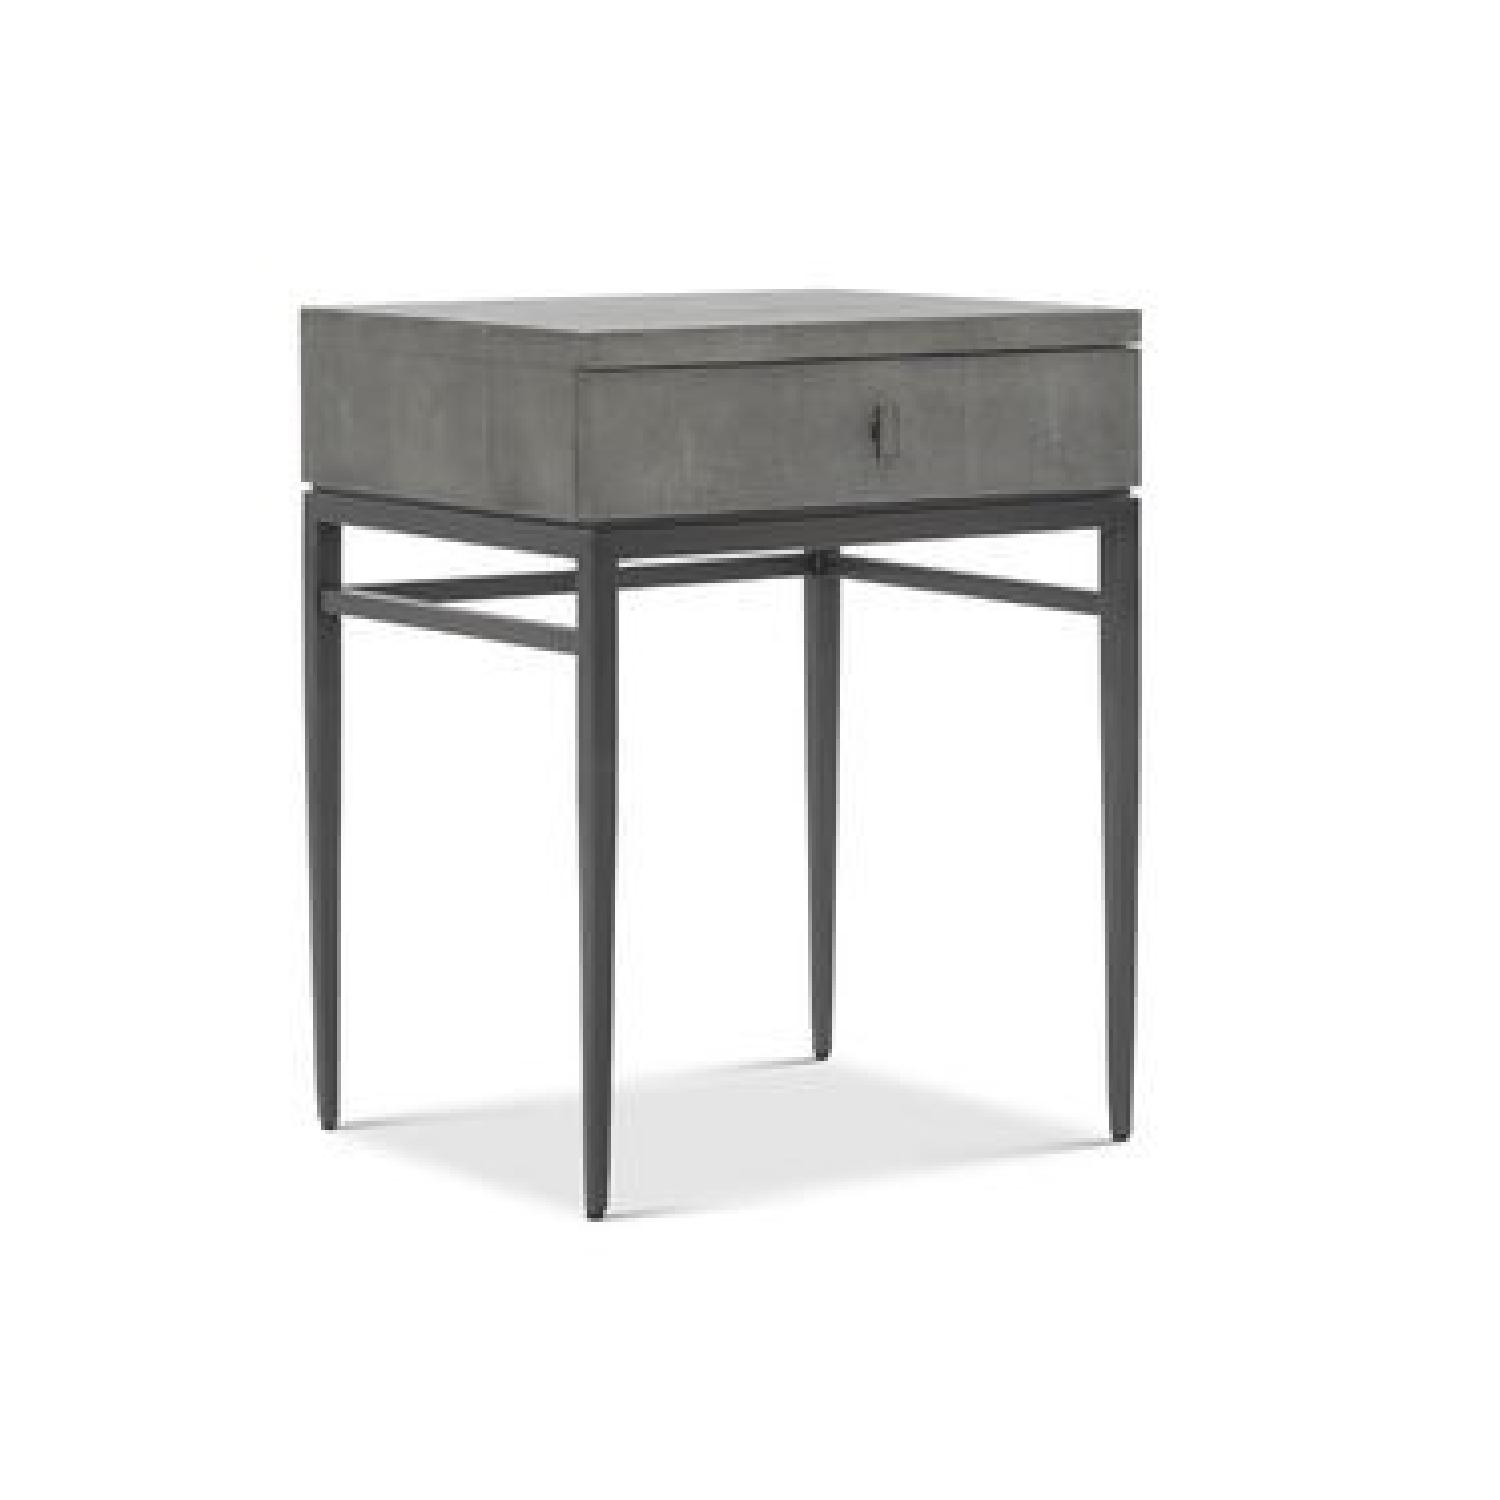 Mitchell Gold + Bob Williams Solange Side Table in Gray